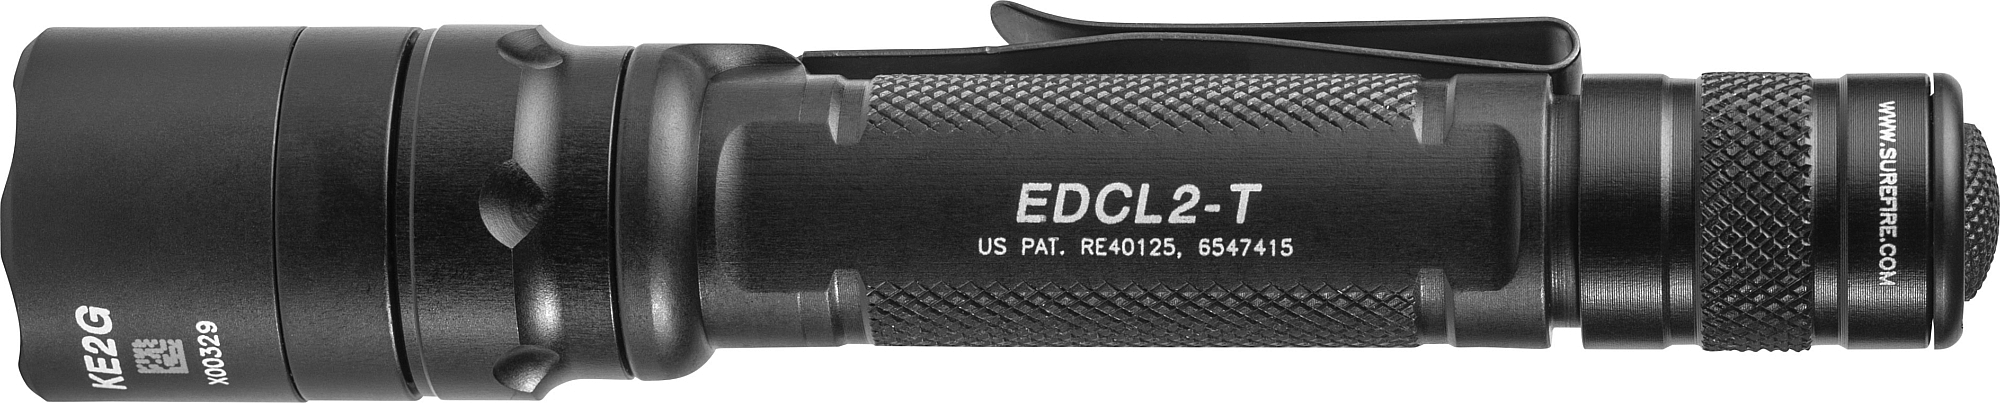 SureFire EDCL2-T delivers 1,200 lumens of white LED light